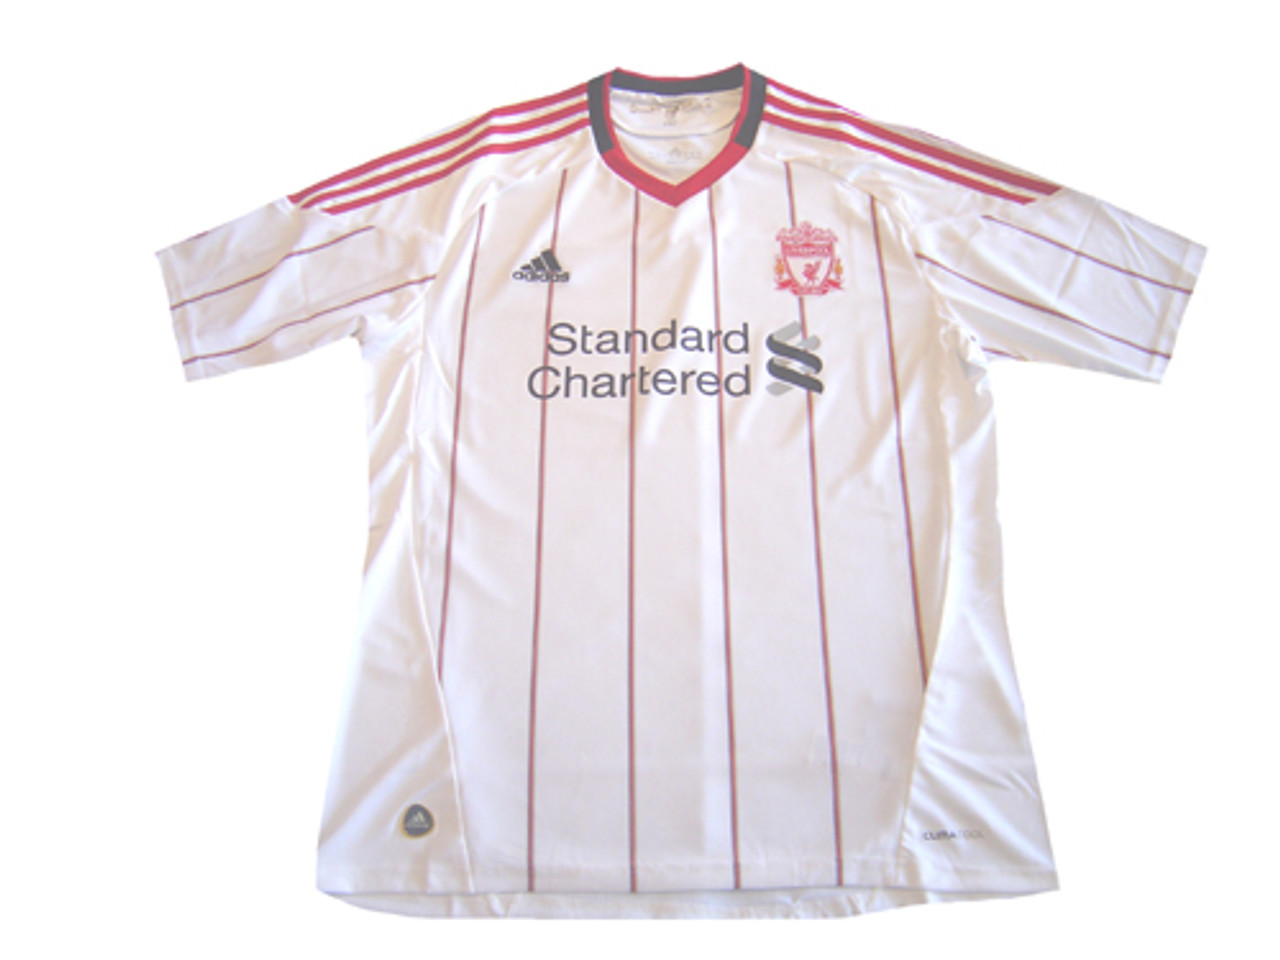 huge selection of 6ffe9 df390 ADIDAS LIVERPOOL 2011 AWAY WHITE JERSEY